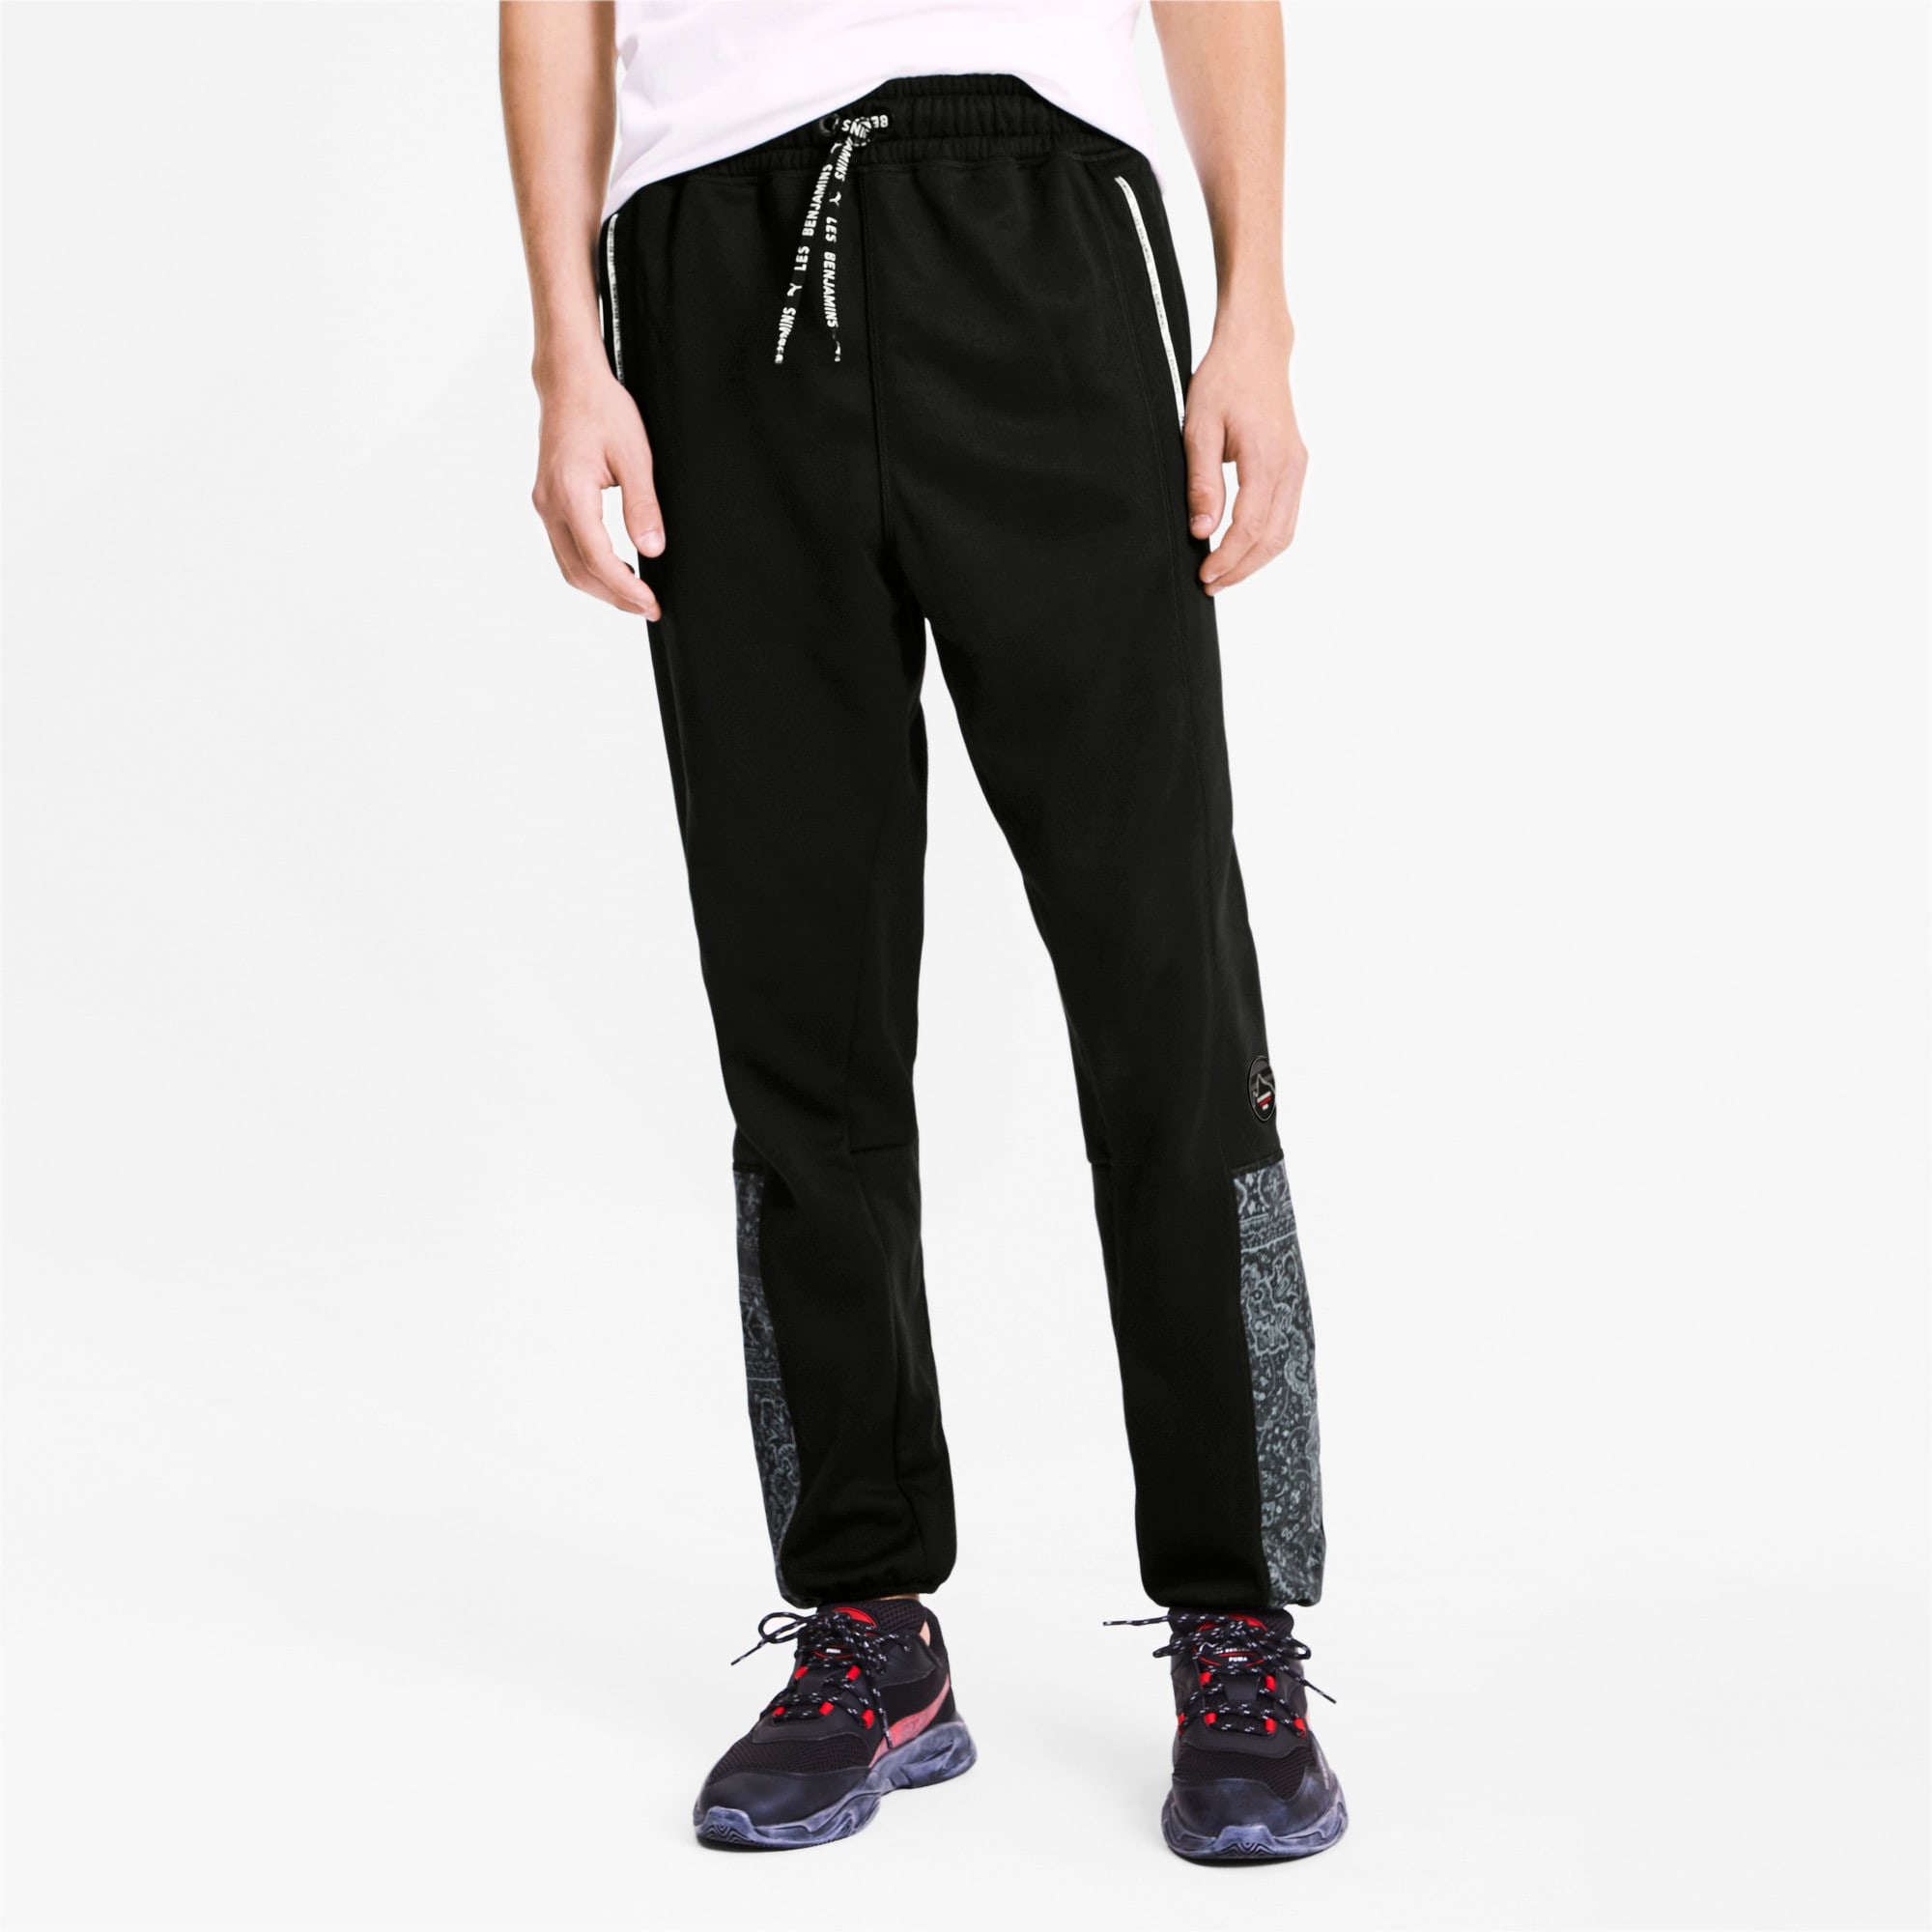 Thumbnail 2 of PUMA x LES BENJAMINS Men's Track Pants, Puma Black, medium